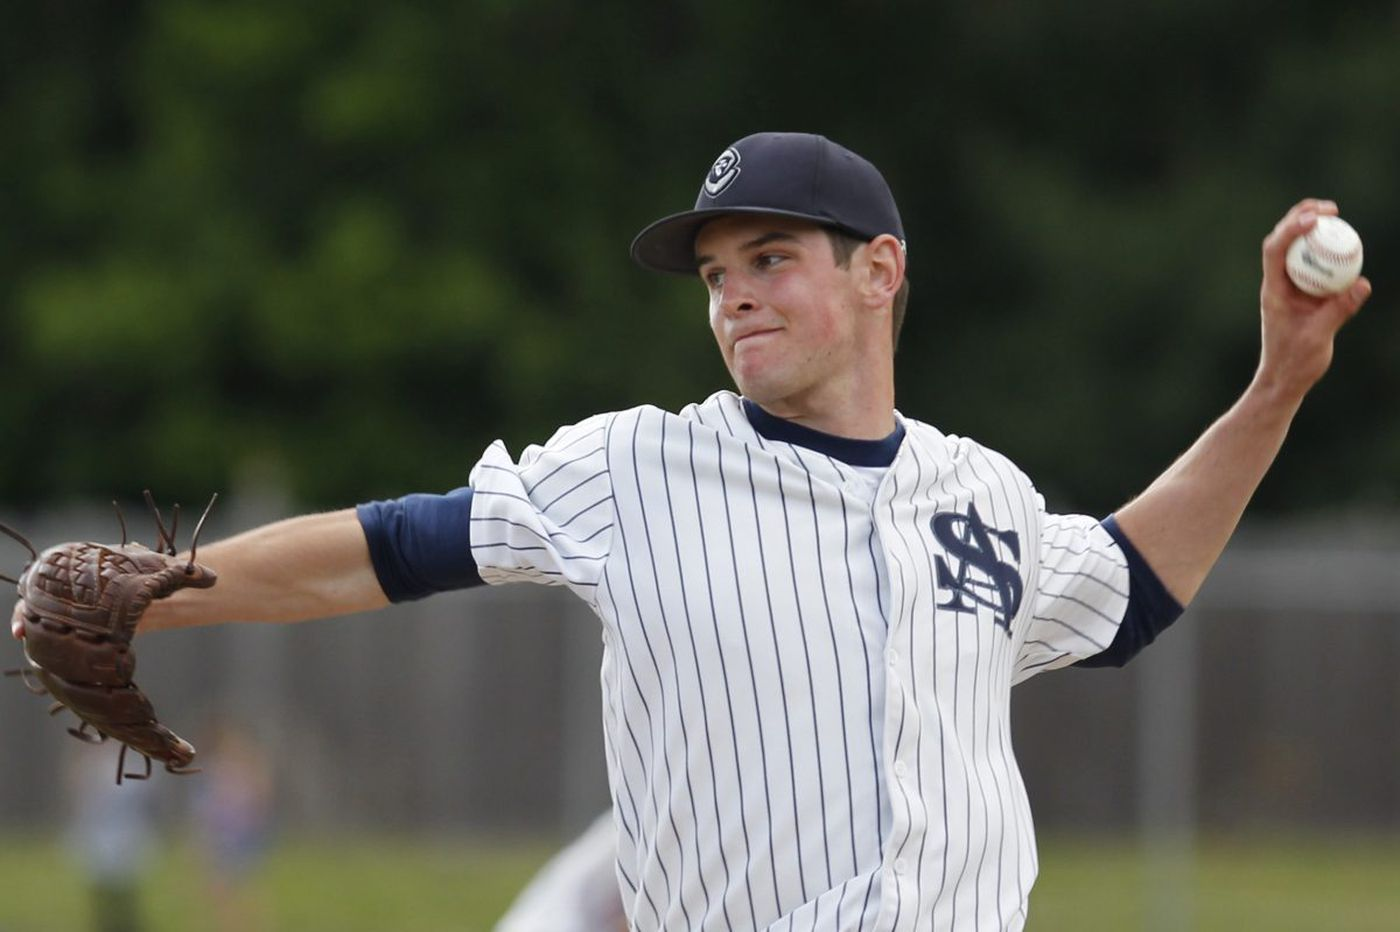 Locals in the MLB draft: Coatesville's Stauffer picked by Orioles